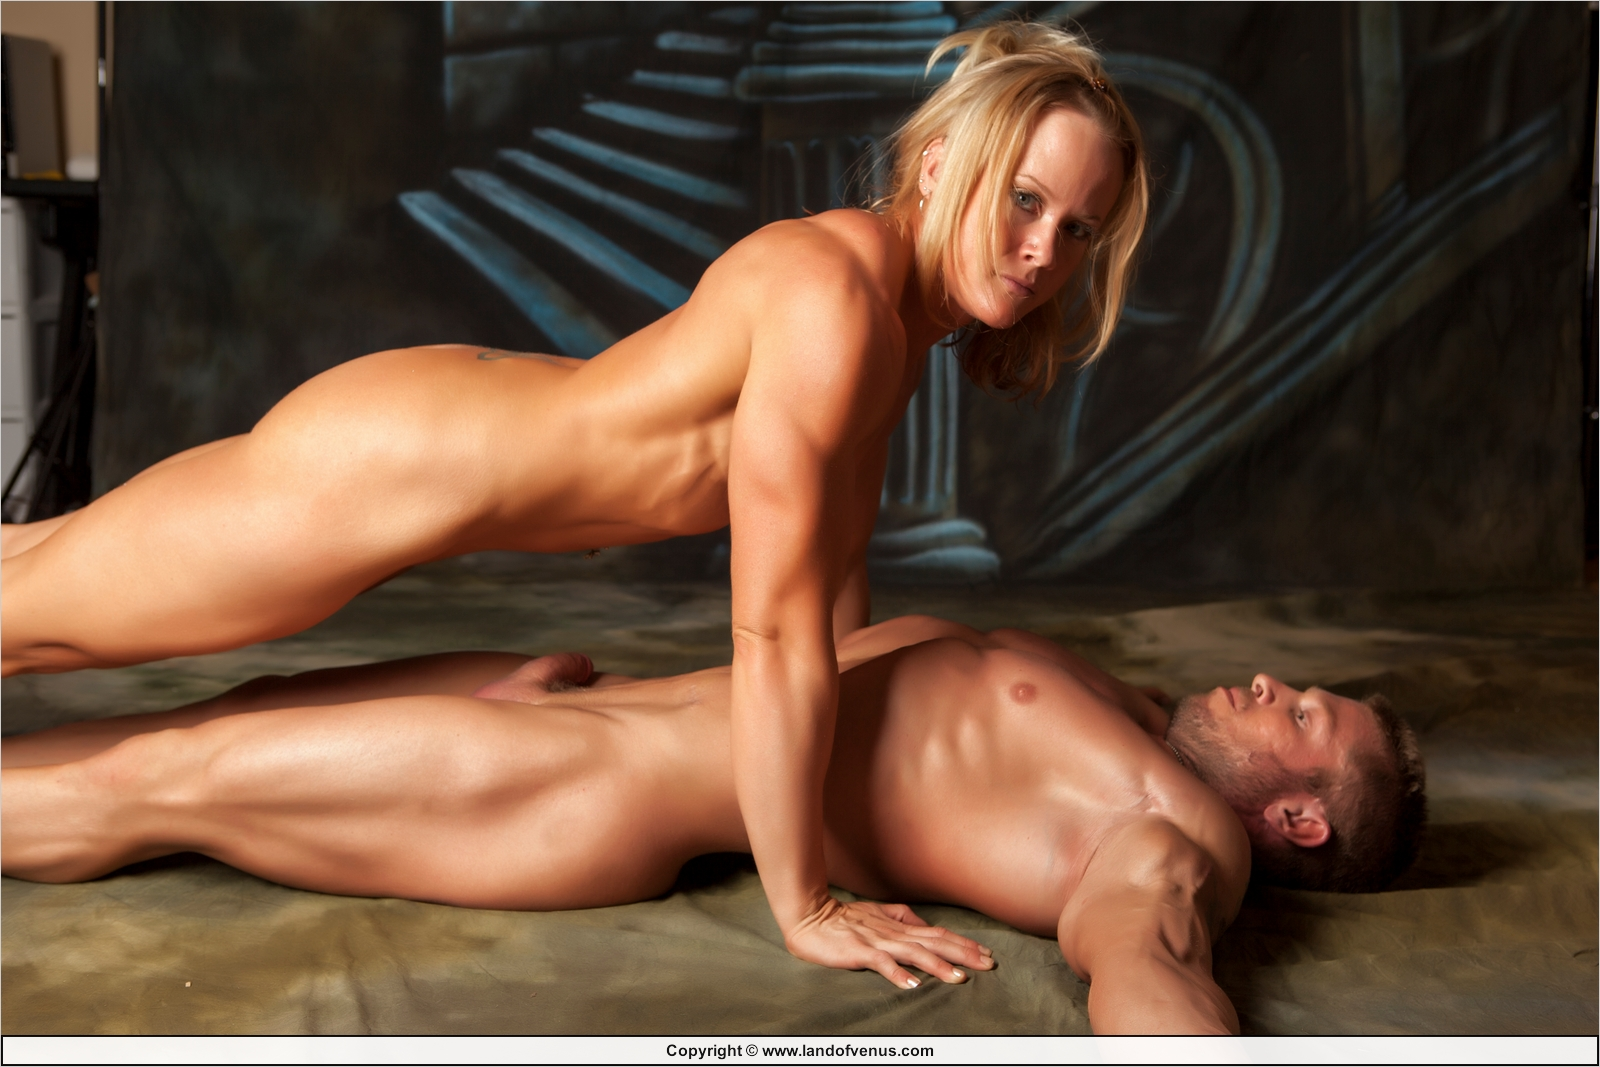 bodybuilder videos, page 5 - XVIDEOSCOM